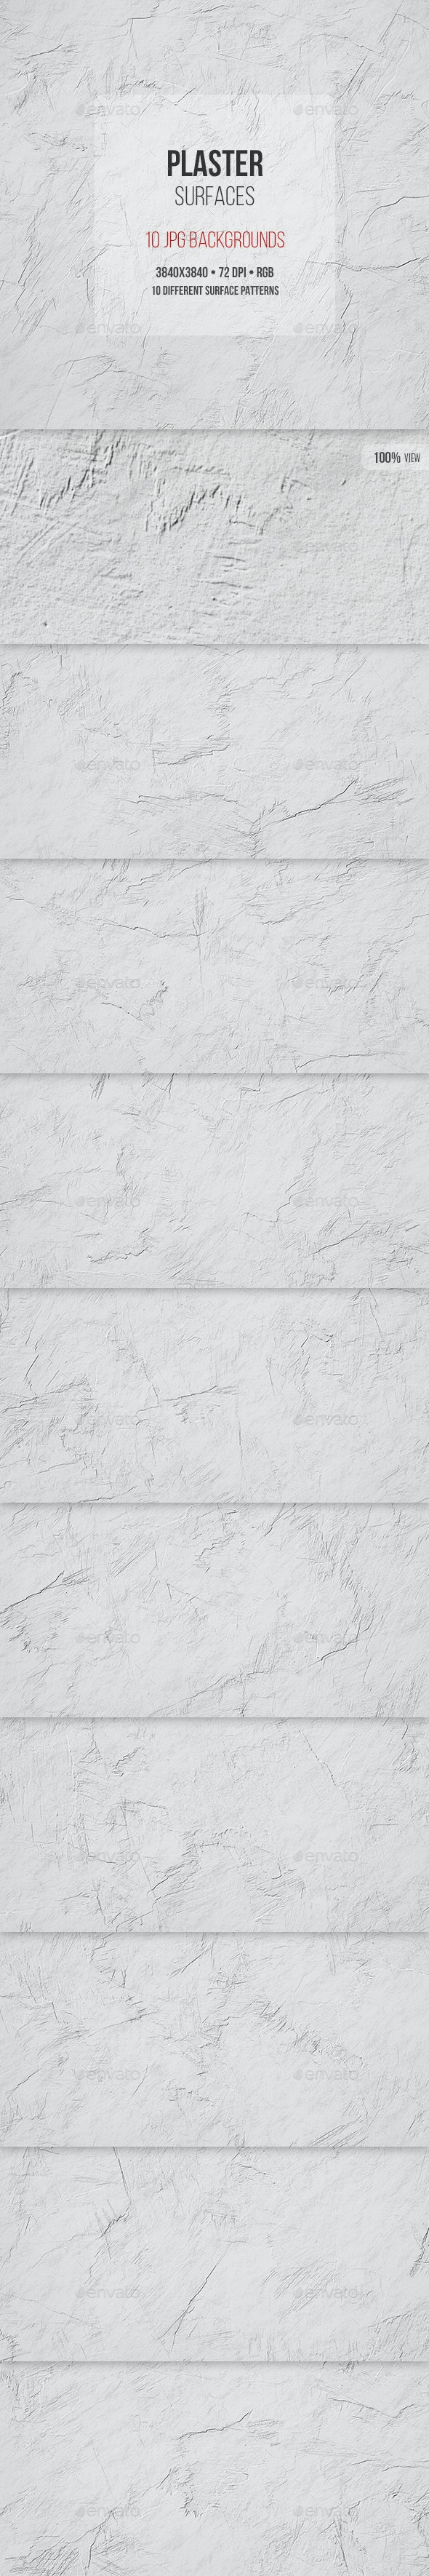 Plaster Surfaces - Urban Backgrounds